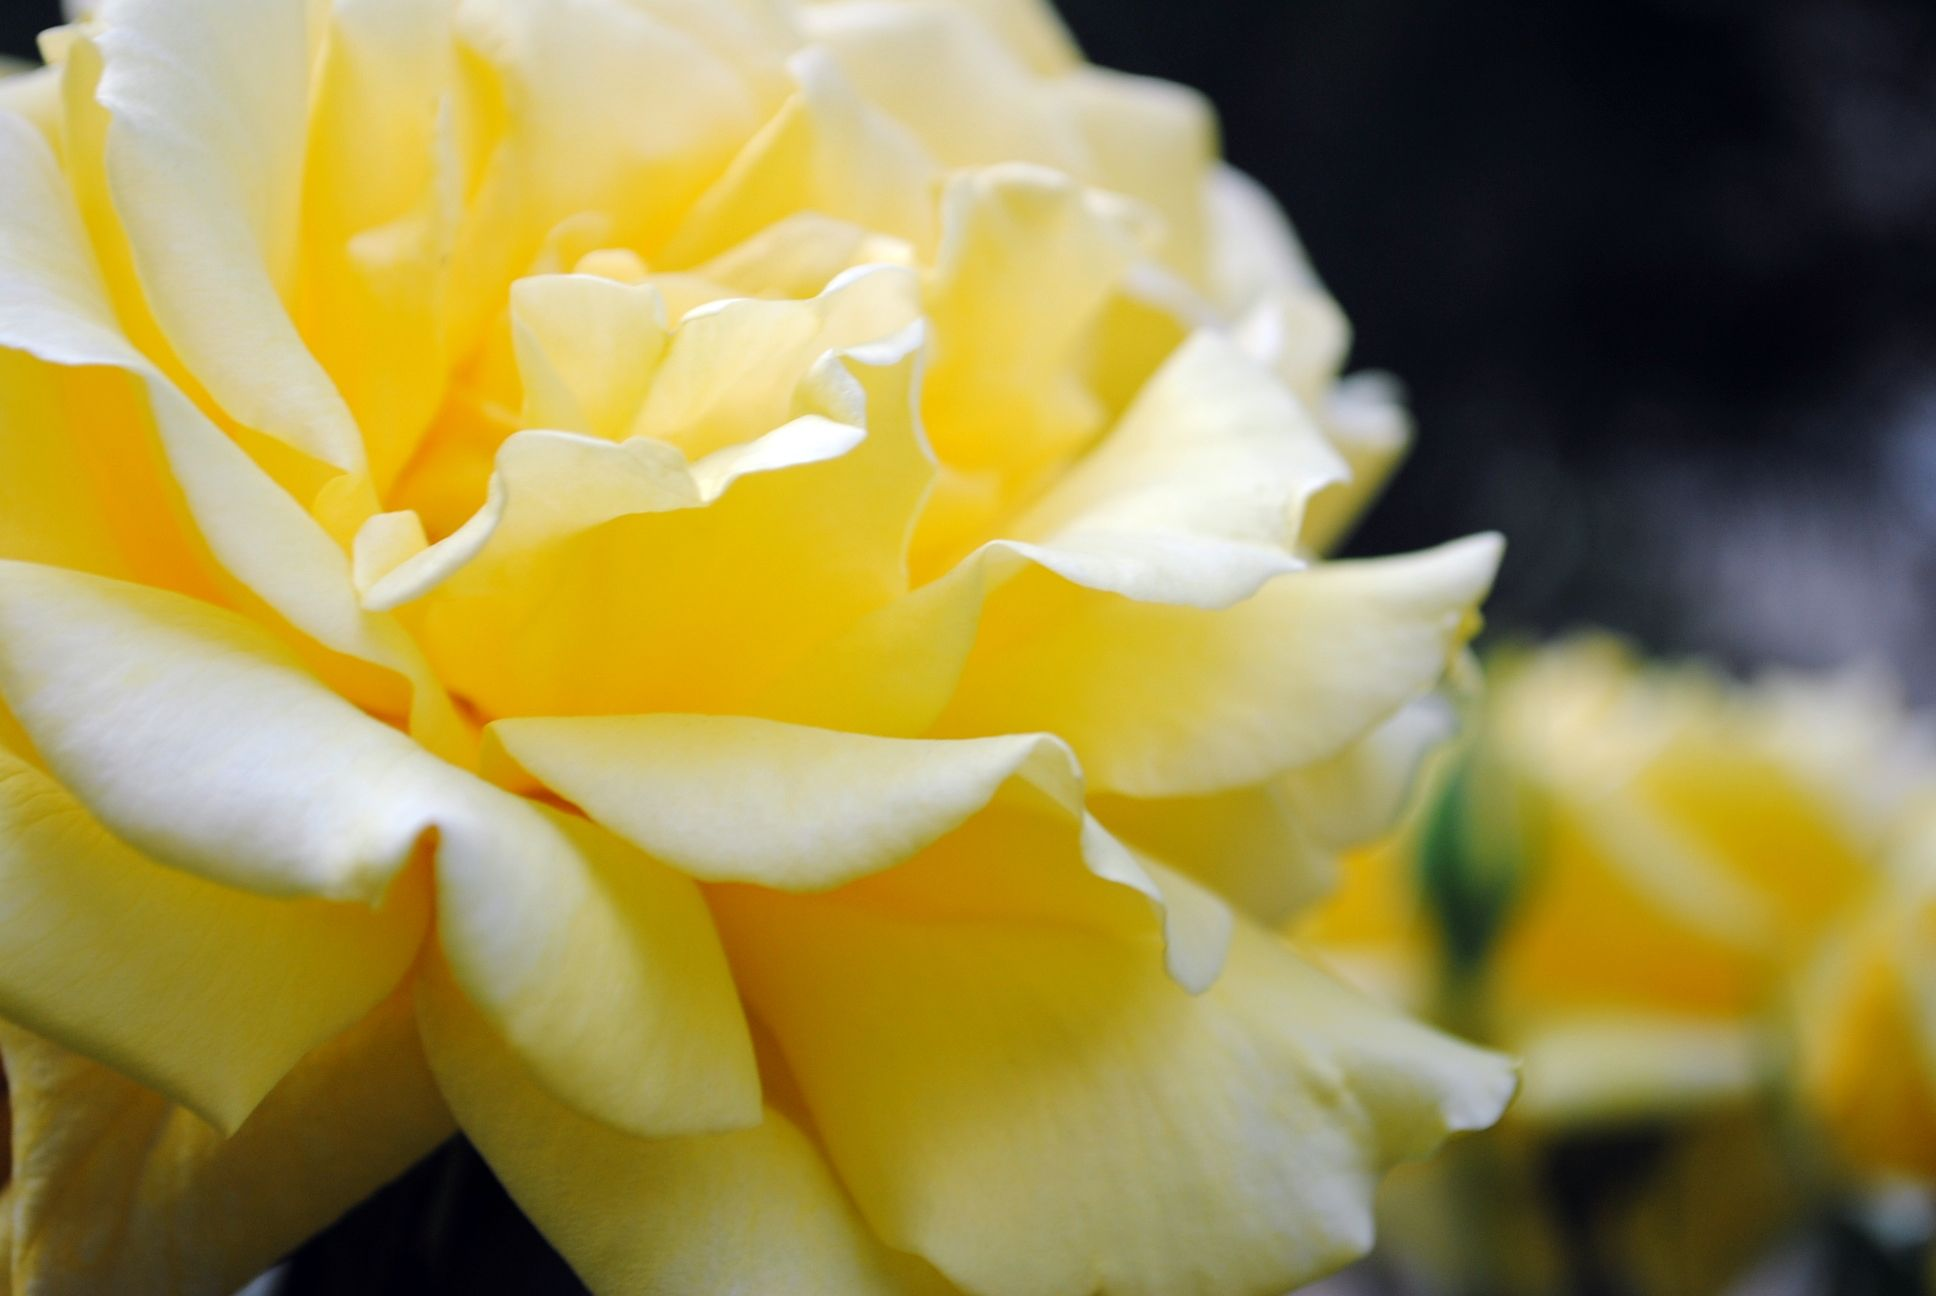 Free picture yellow rose flower petals yellow rose flower petals dhlflorist Image collections